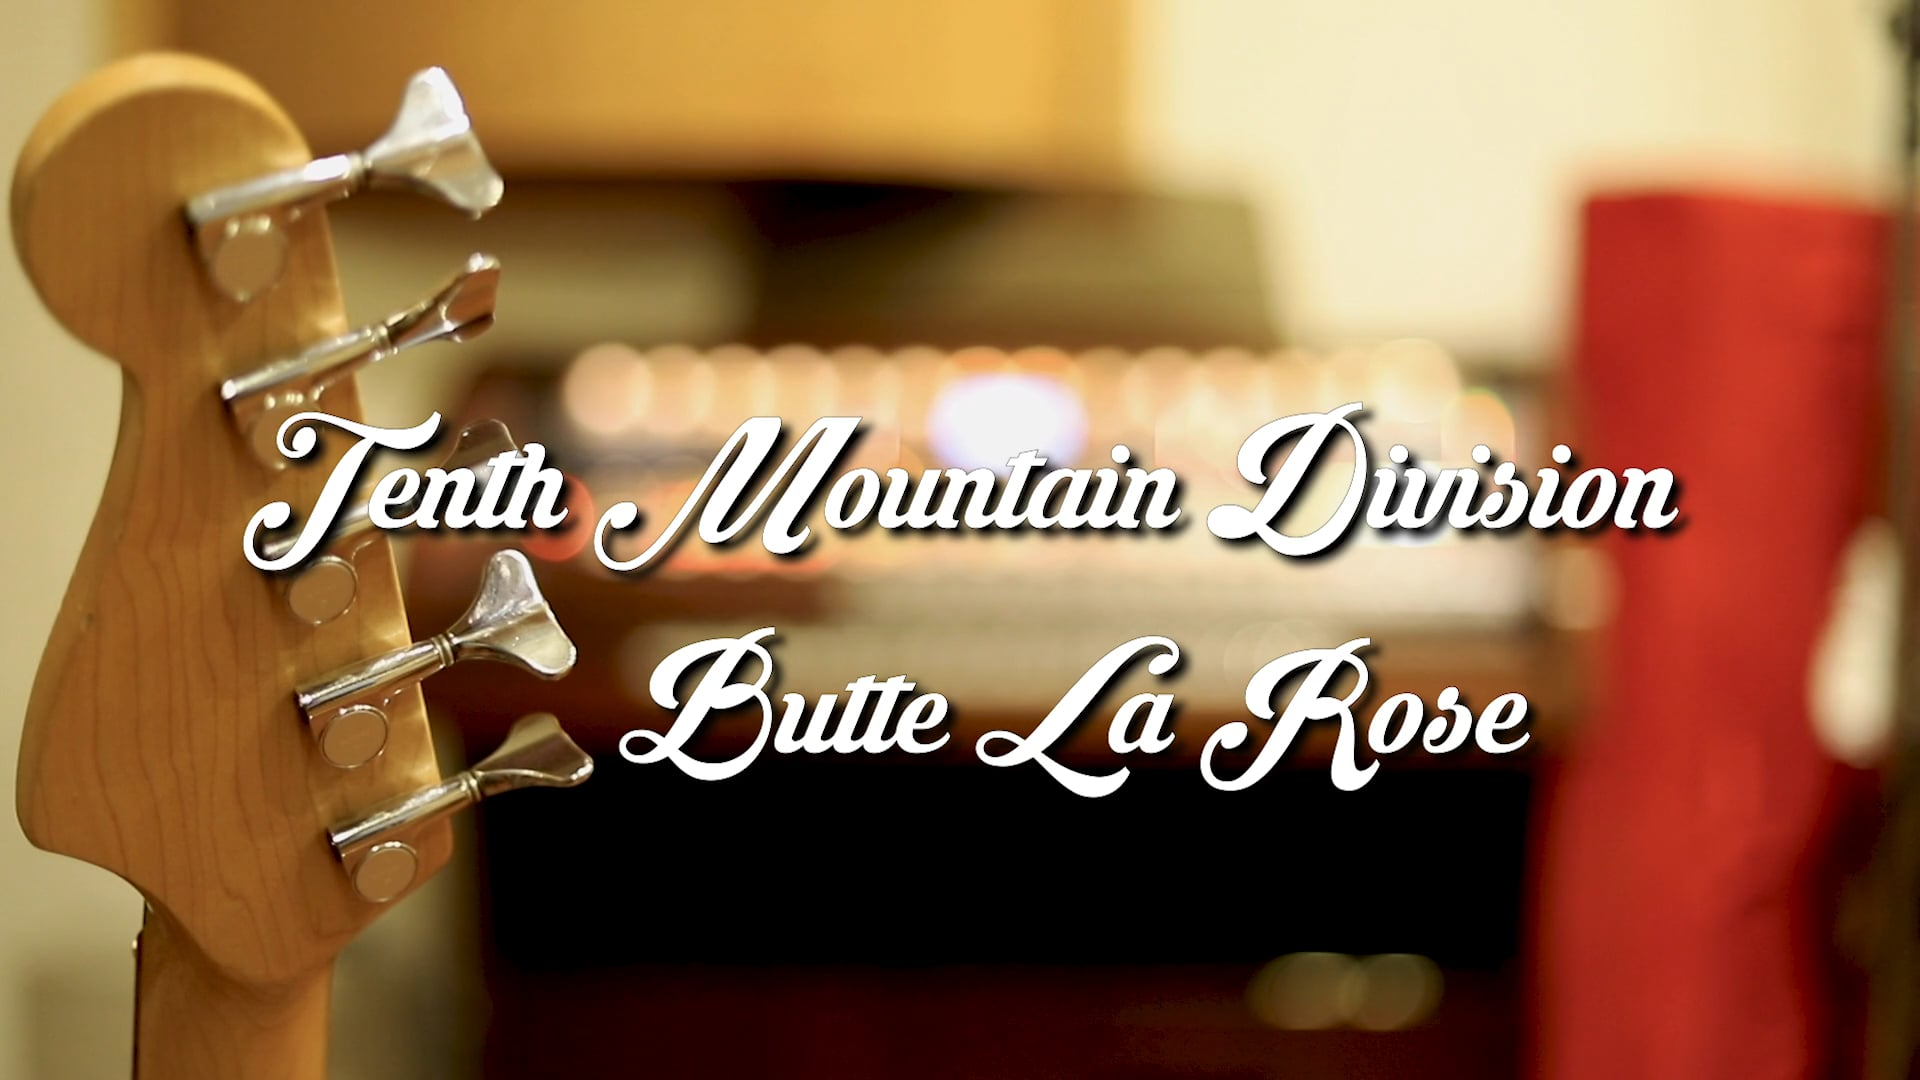 The Making of Butte La Rose